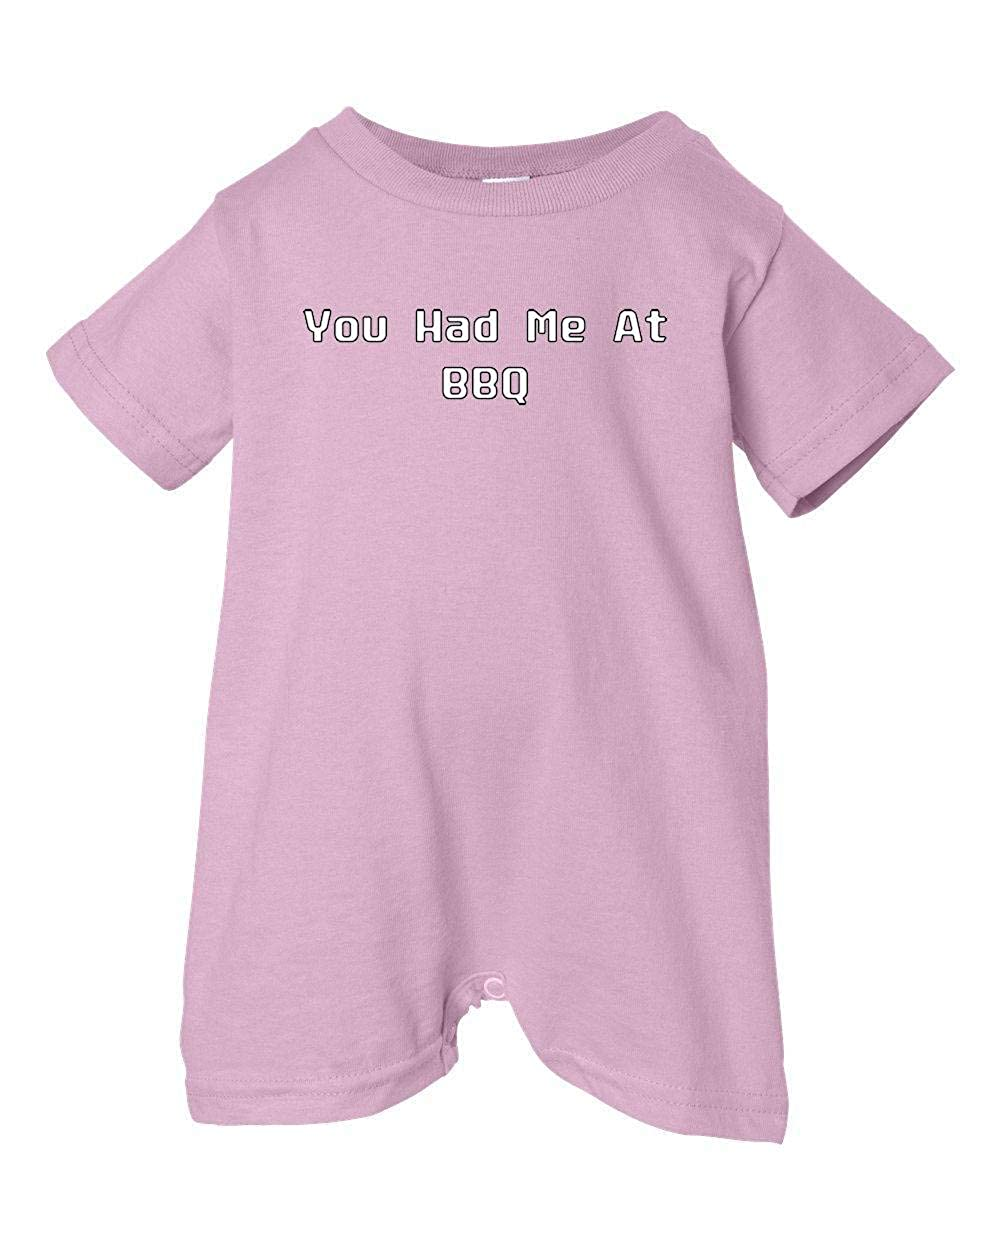 Pink, 24 Months Tasty Threads Unisex Baby You Had Me At BBQ T-Shirt Romper